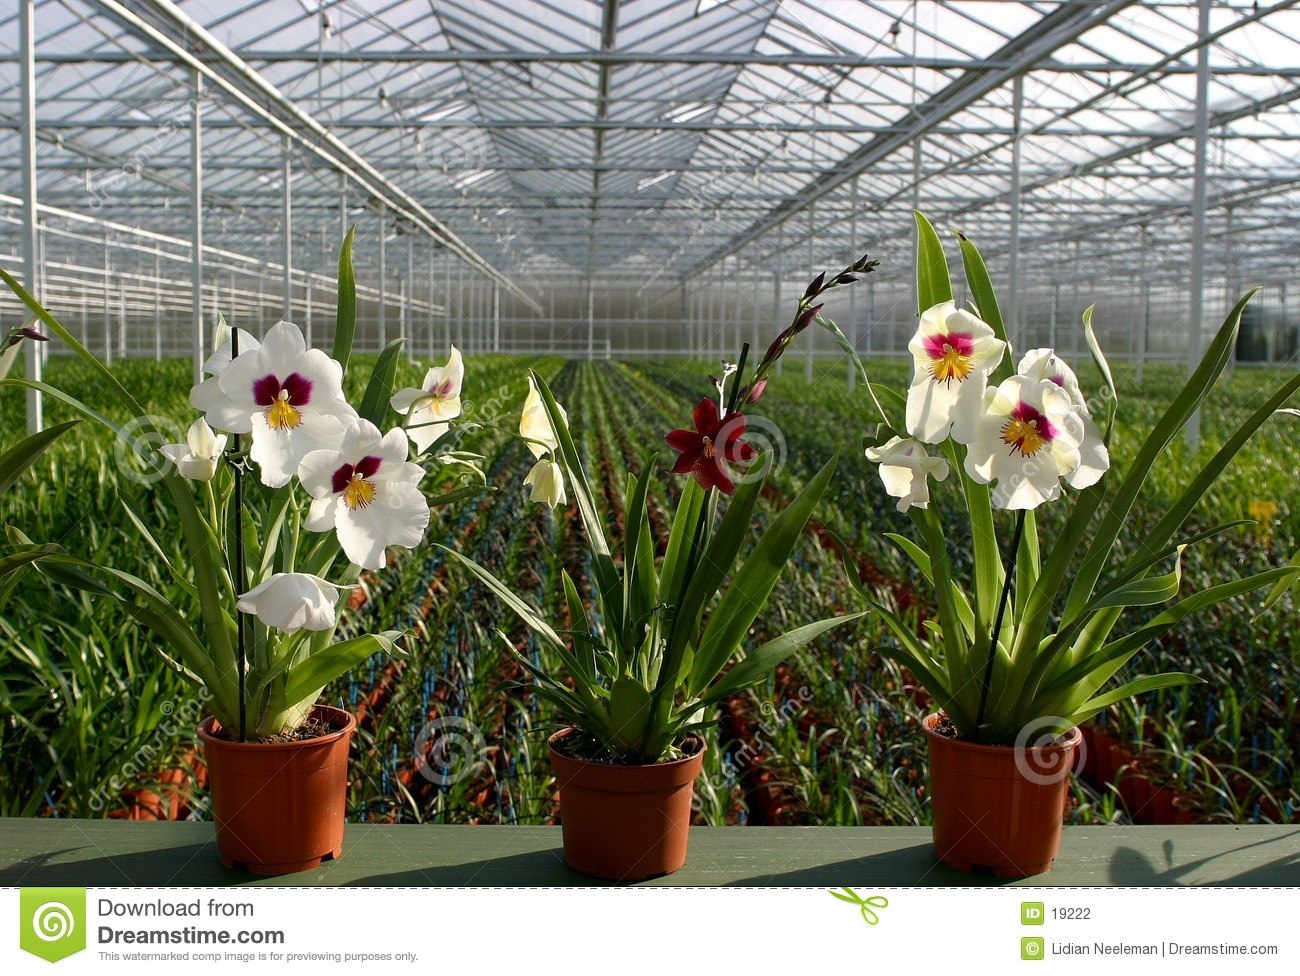 Plant Nursery orchids Stock graphy Image